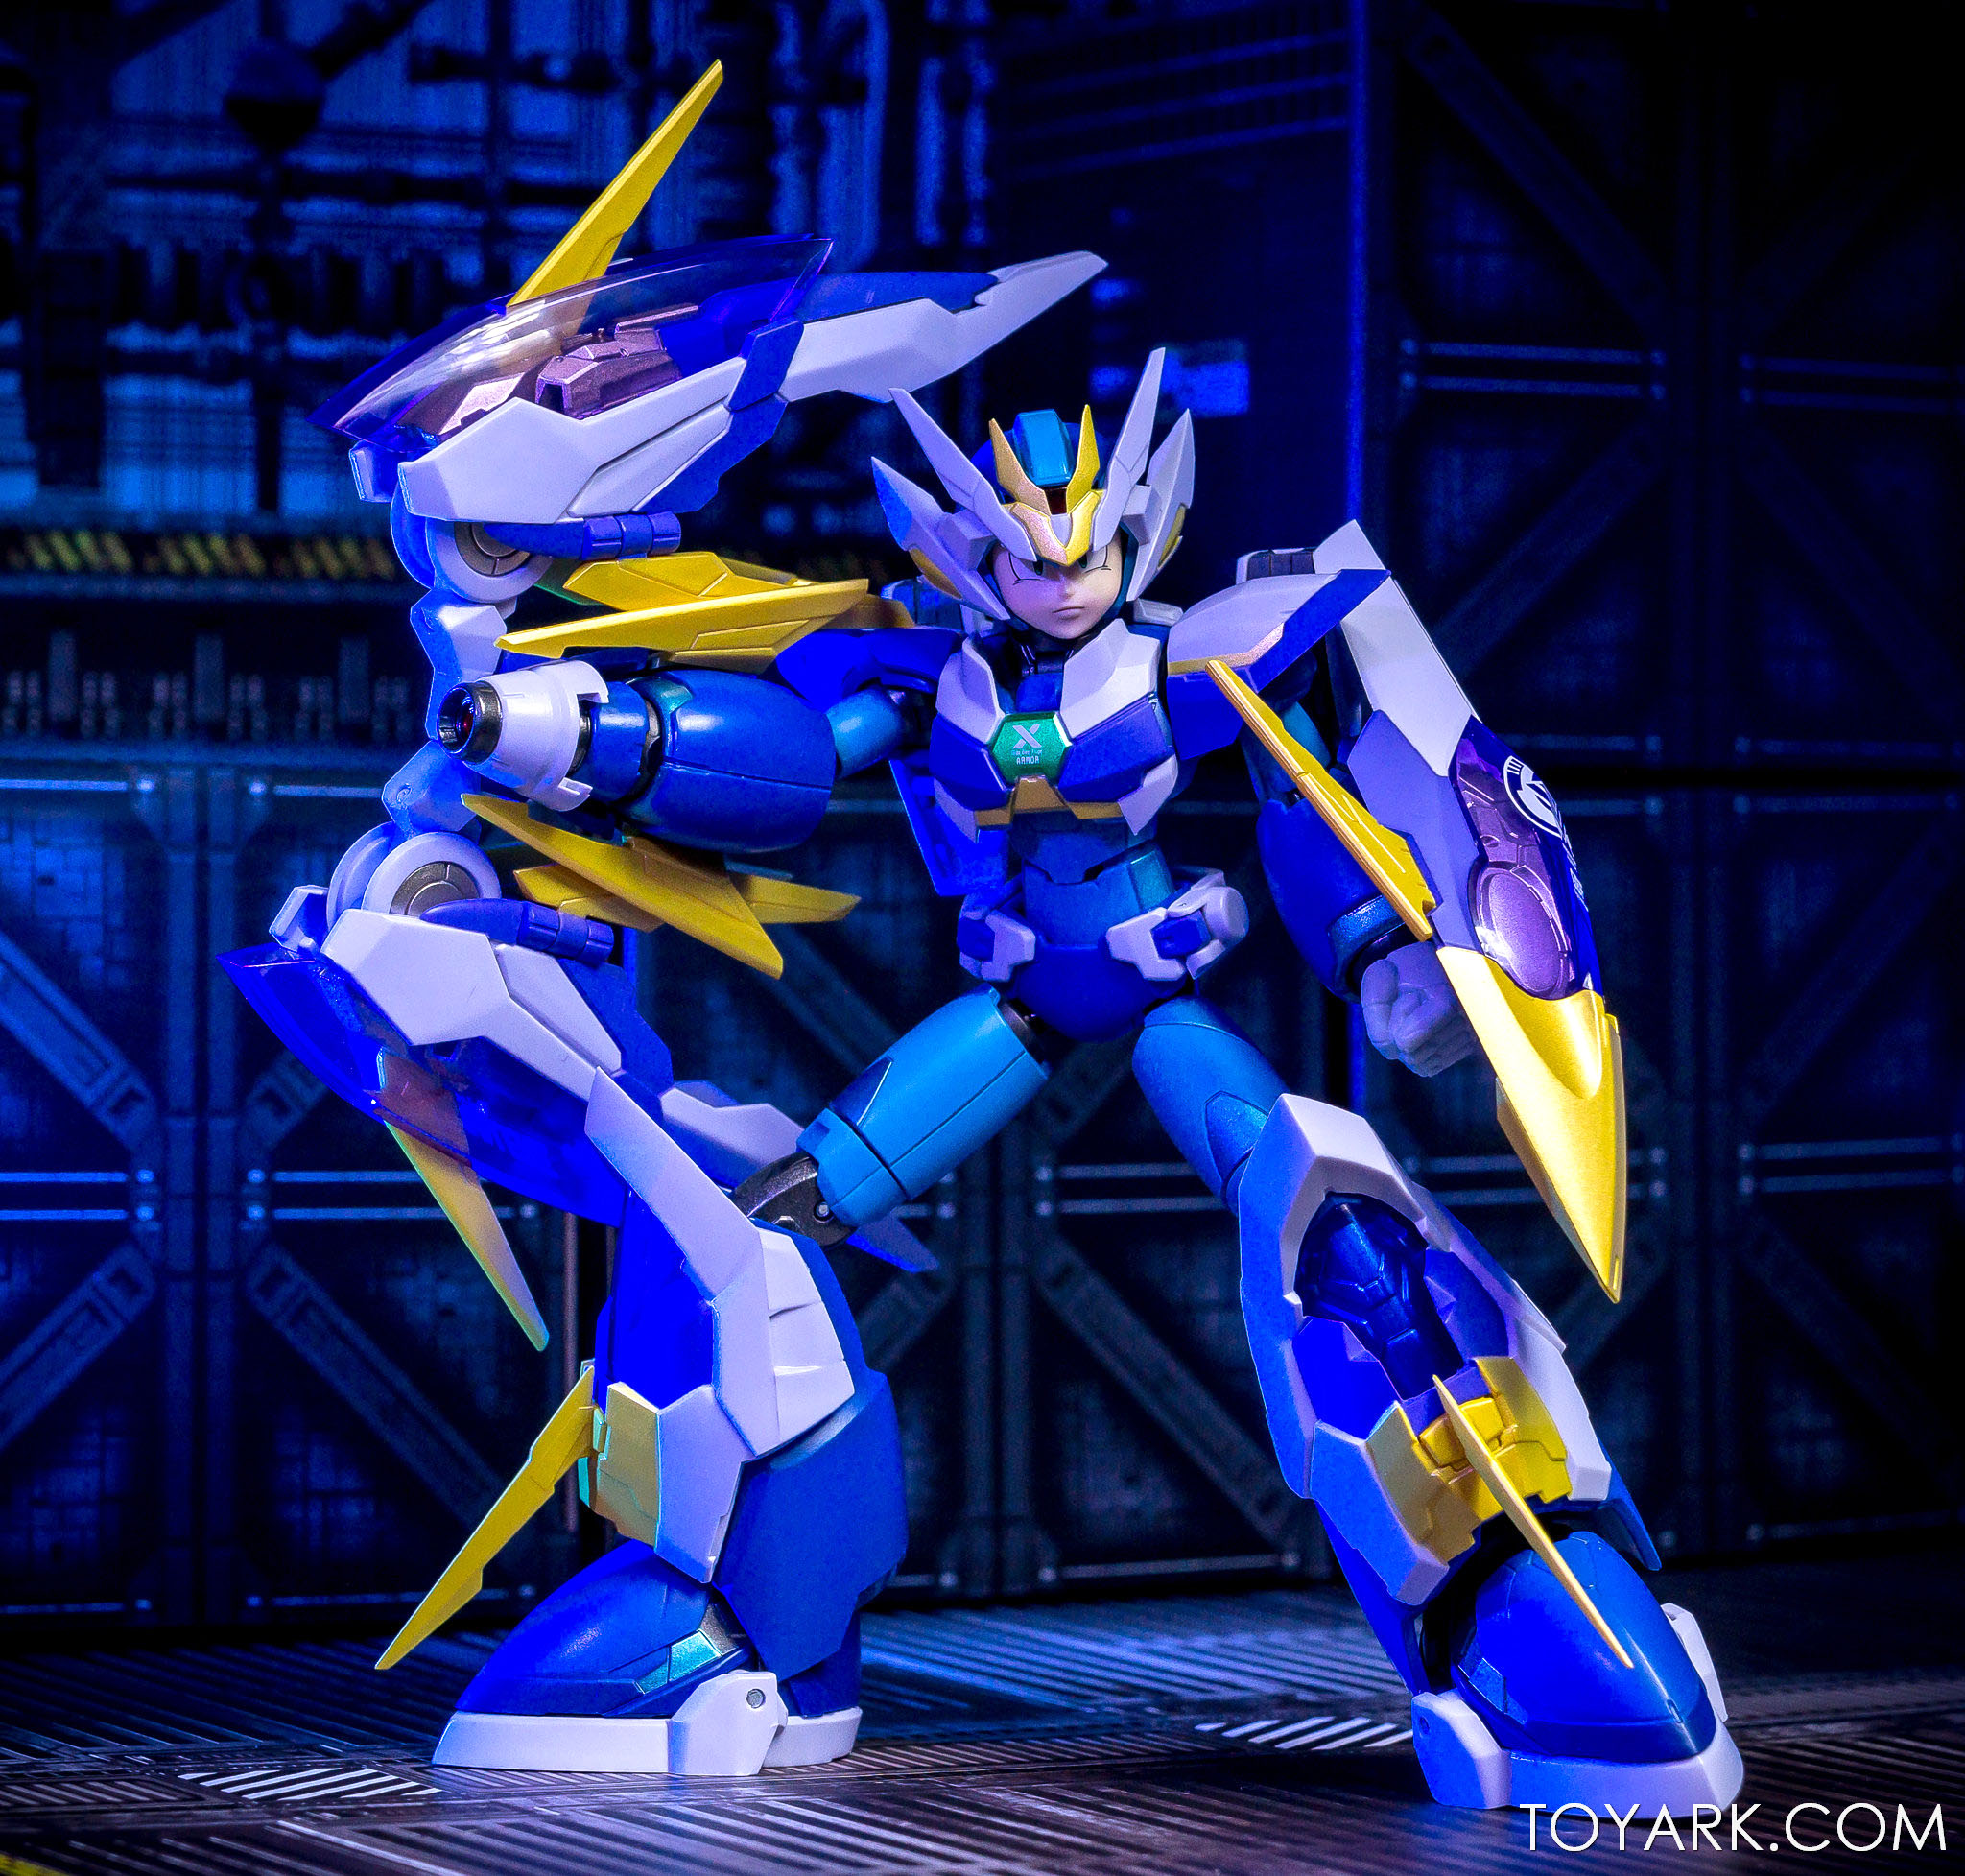 http://news.toyark.com/wp-content/uploads/sites/4/2018/01/Mega-Man-X-Giga-Armor-00054.jpg